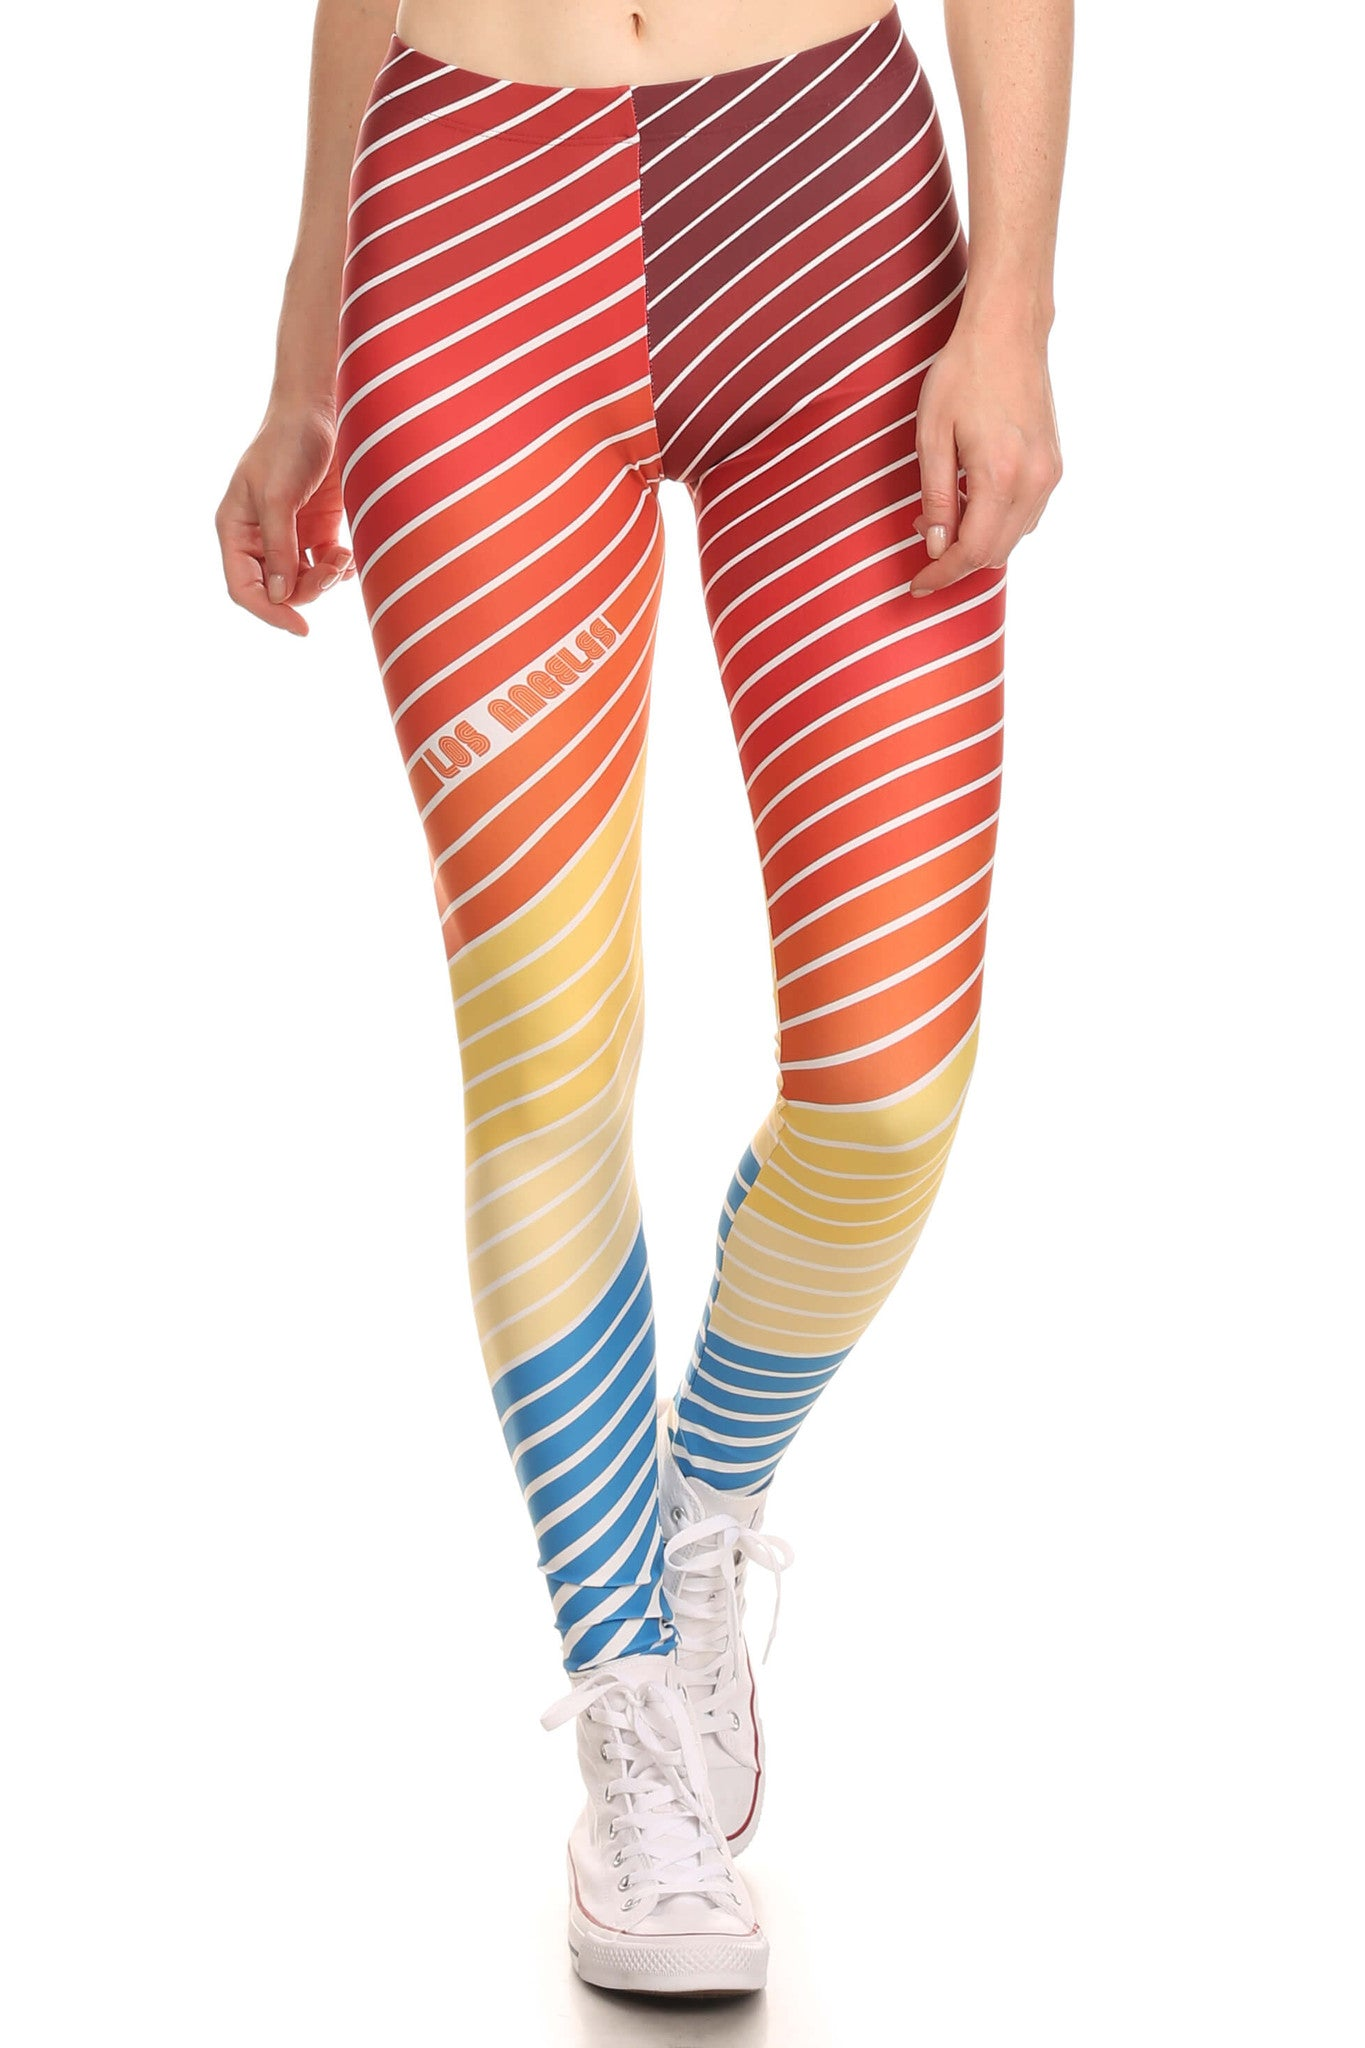 70's Los Angeles Leggings - POPRAGEOUS  - 1